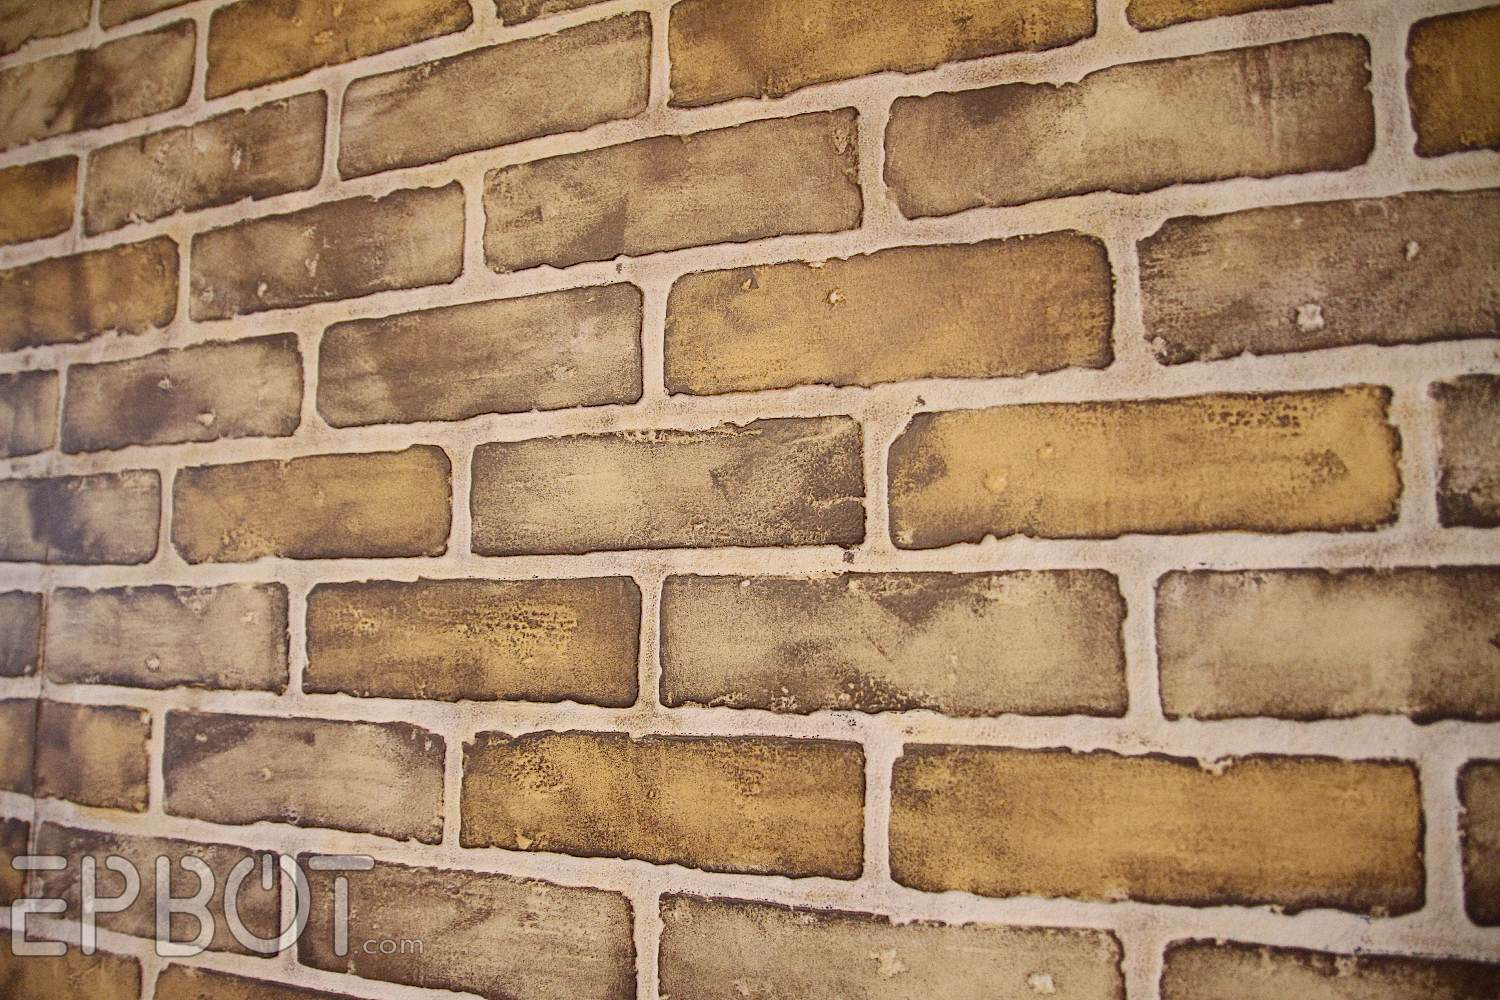 EPBOT DIY Faux Brick Painting Tutorial